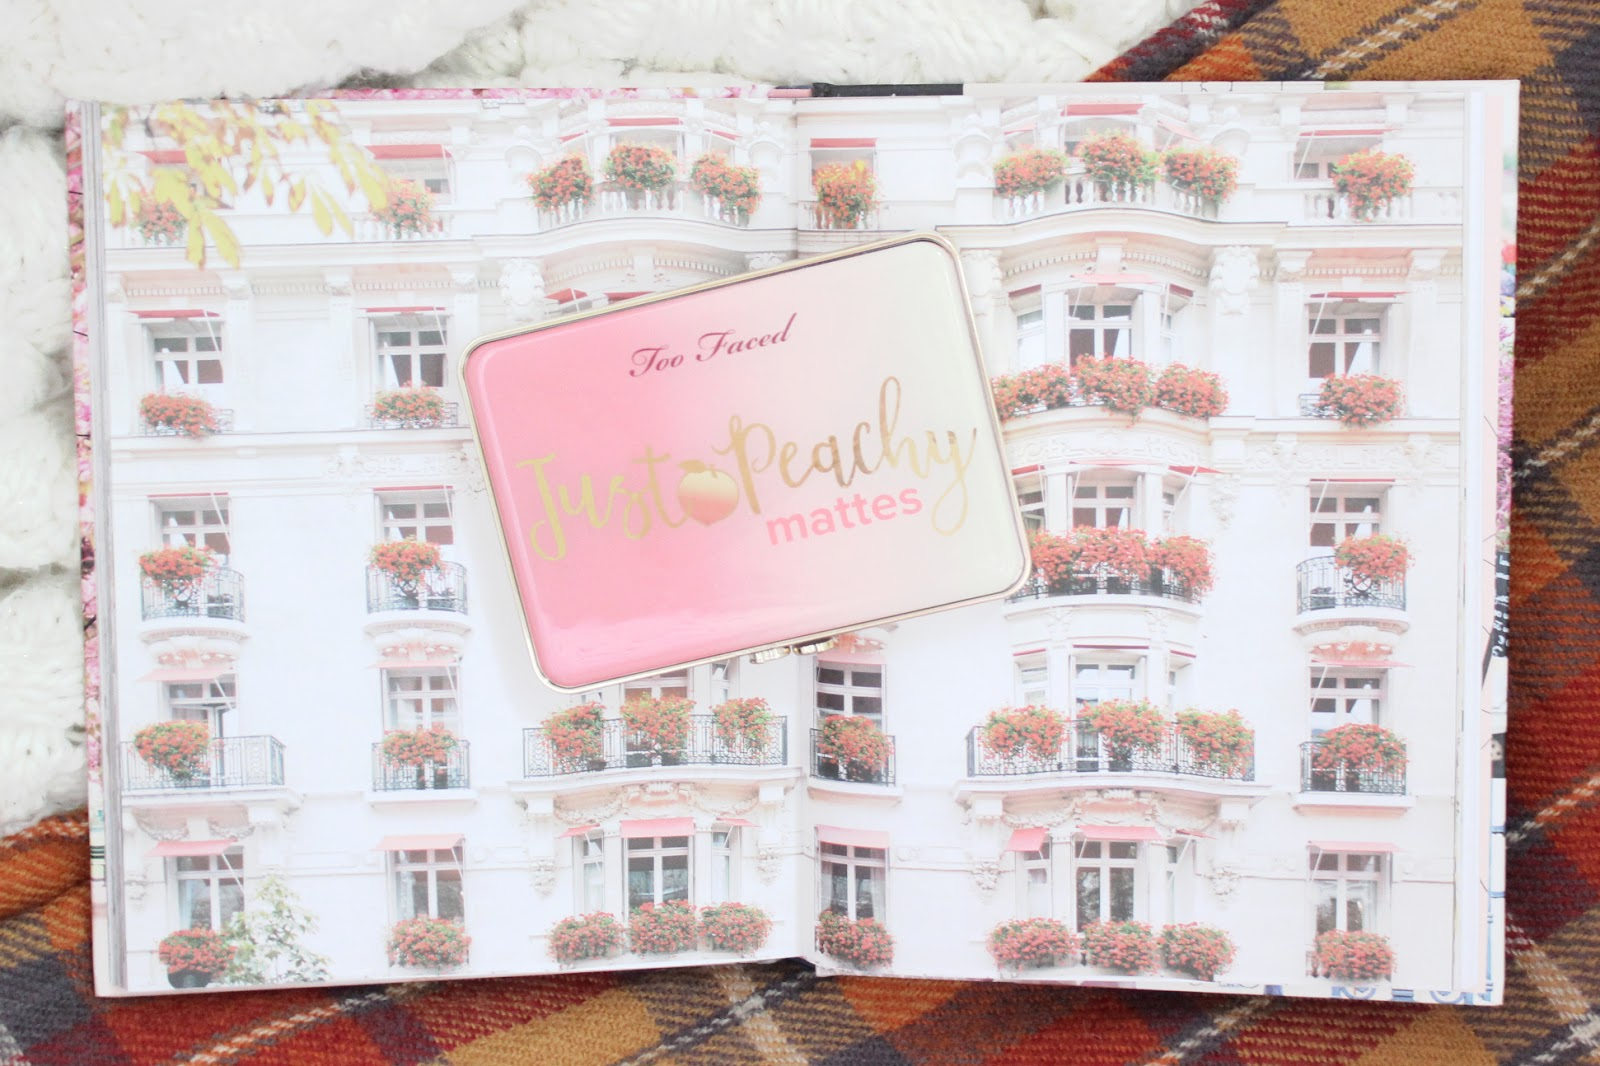 too faced, makeup palette, just peachy, swatches, makeup review, too faced review, toronto blogger, beauty blogger, eyeshadow